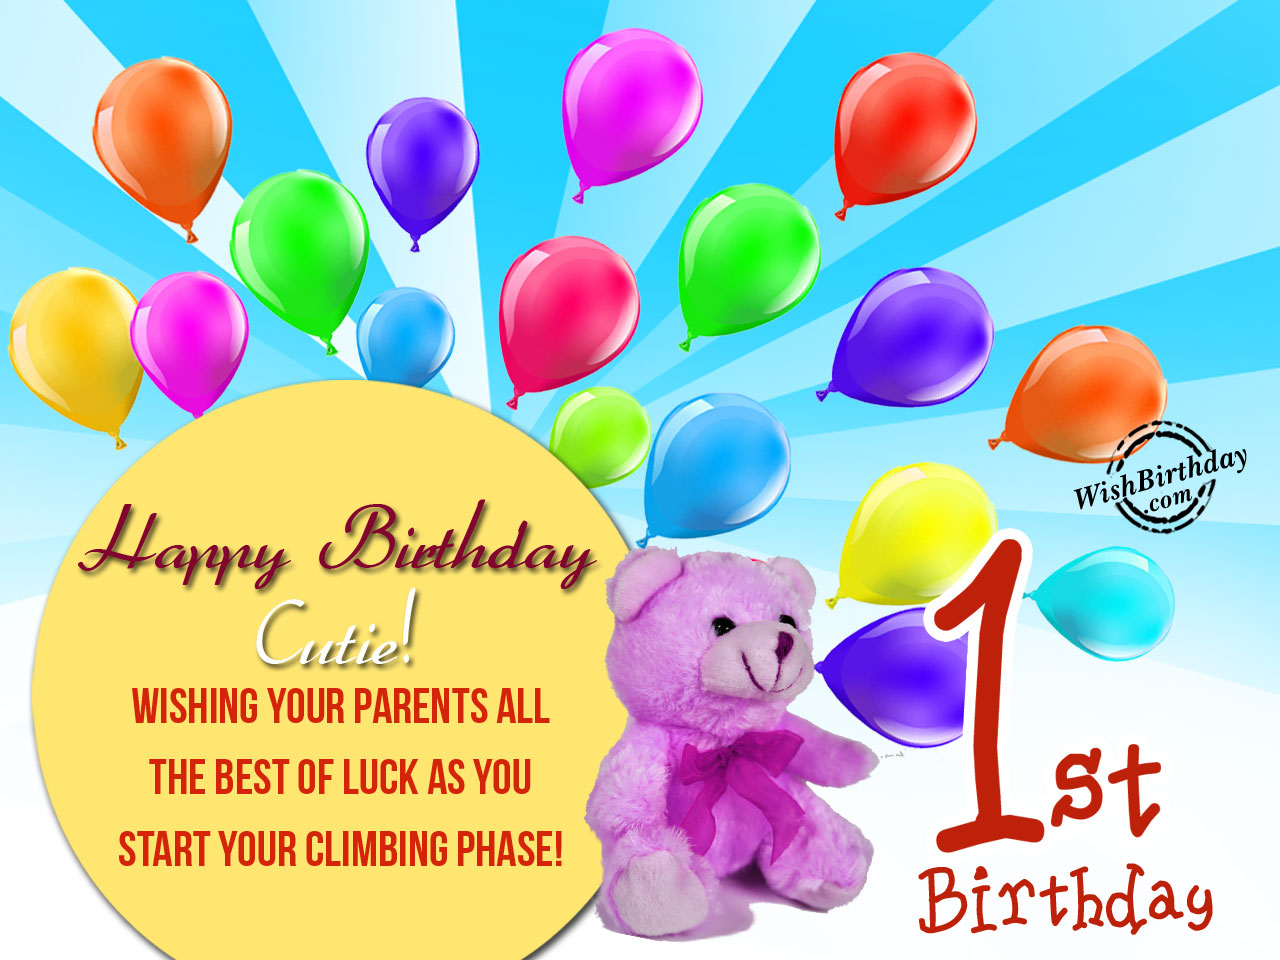 Happy 1st birthday jpg free download Happy 1st Birthday Cutie - WishBirthday.com jpg free download